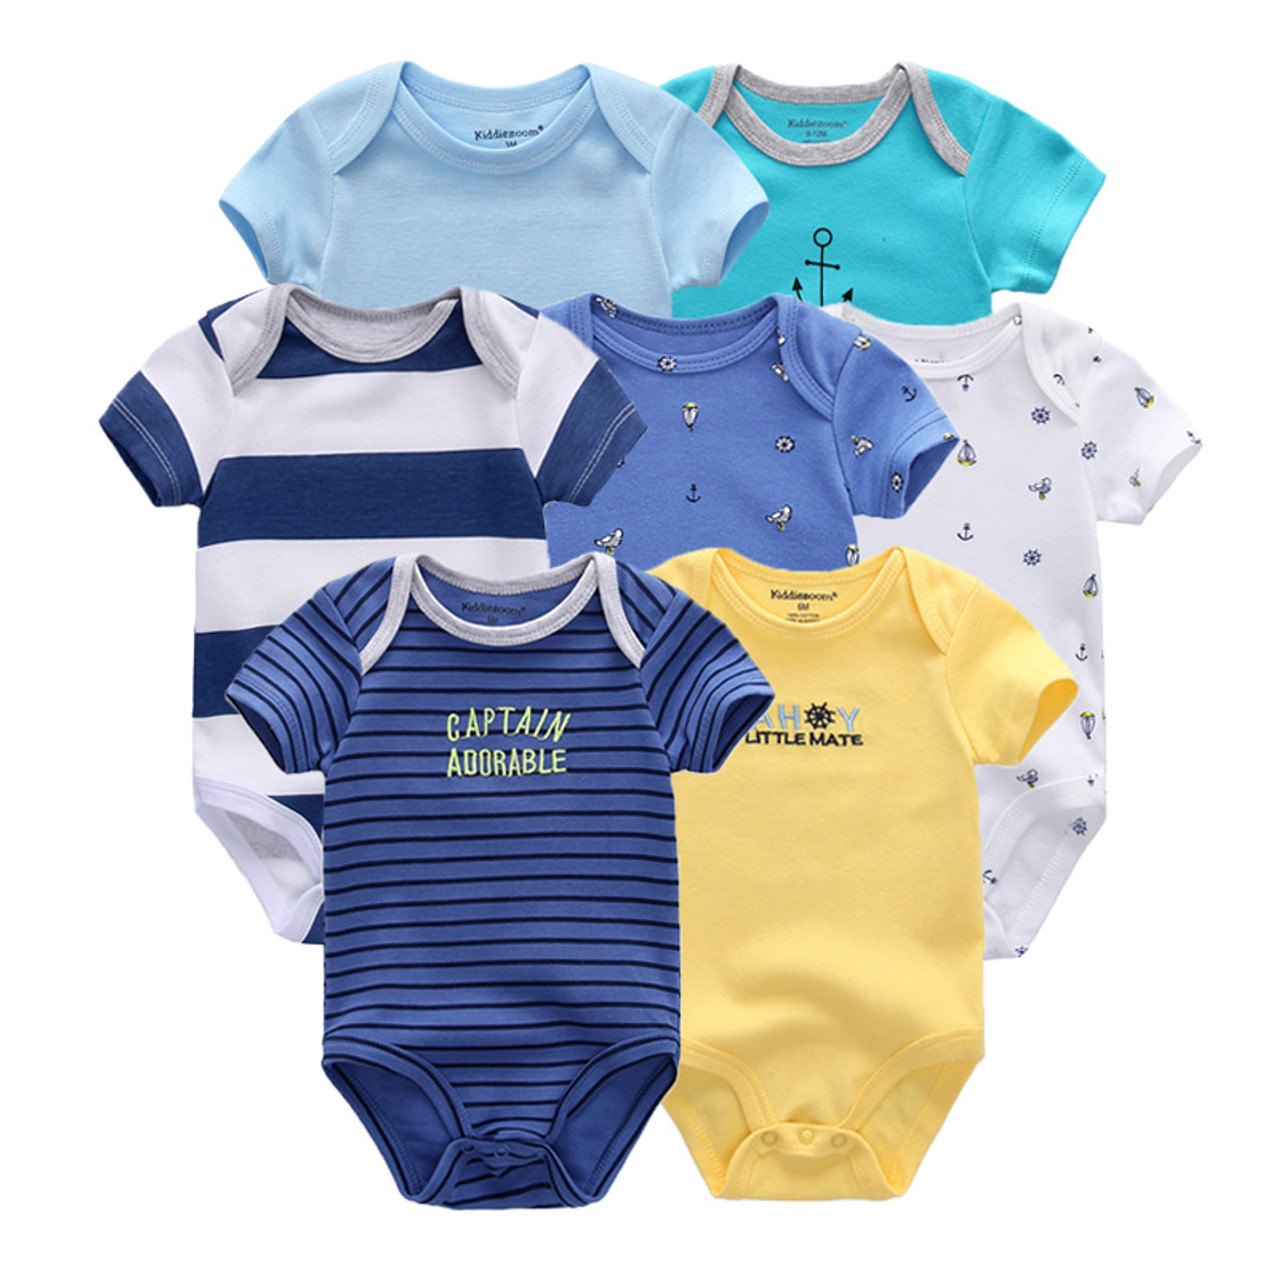 2ae98d111 7 PCS lot newborn baby clothes baby rompers short sleeve baby ...